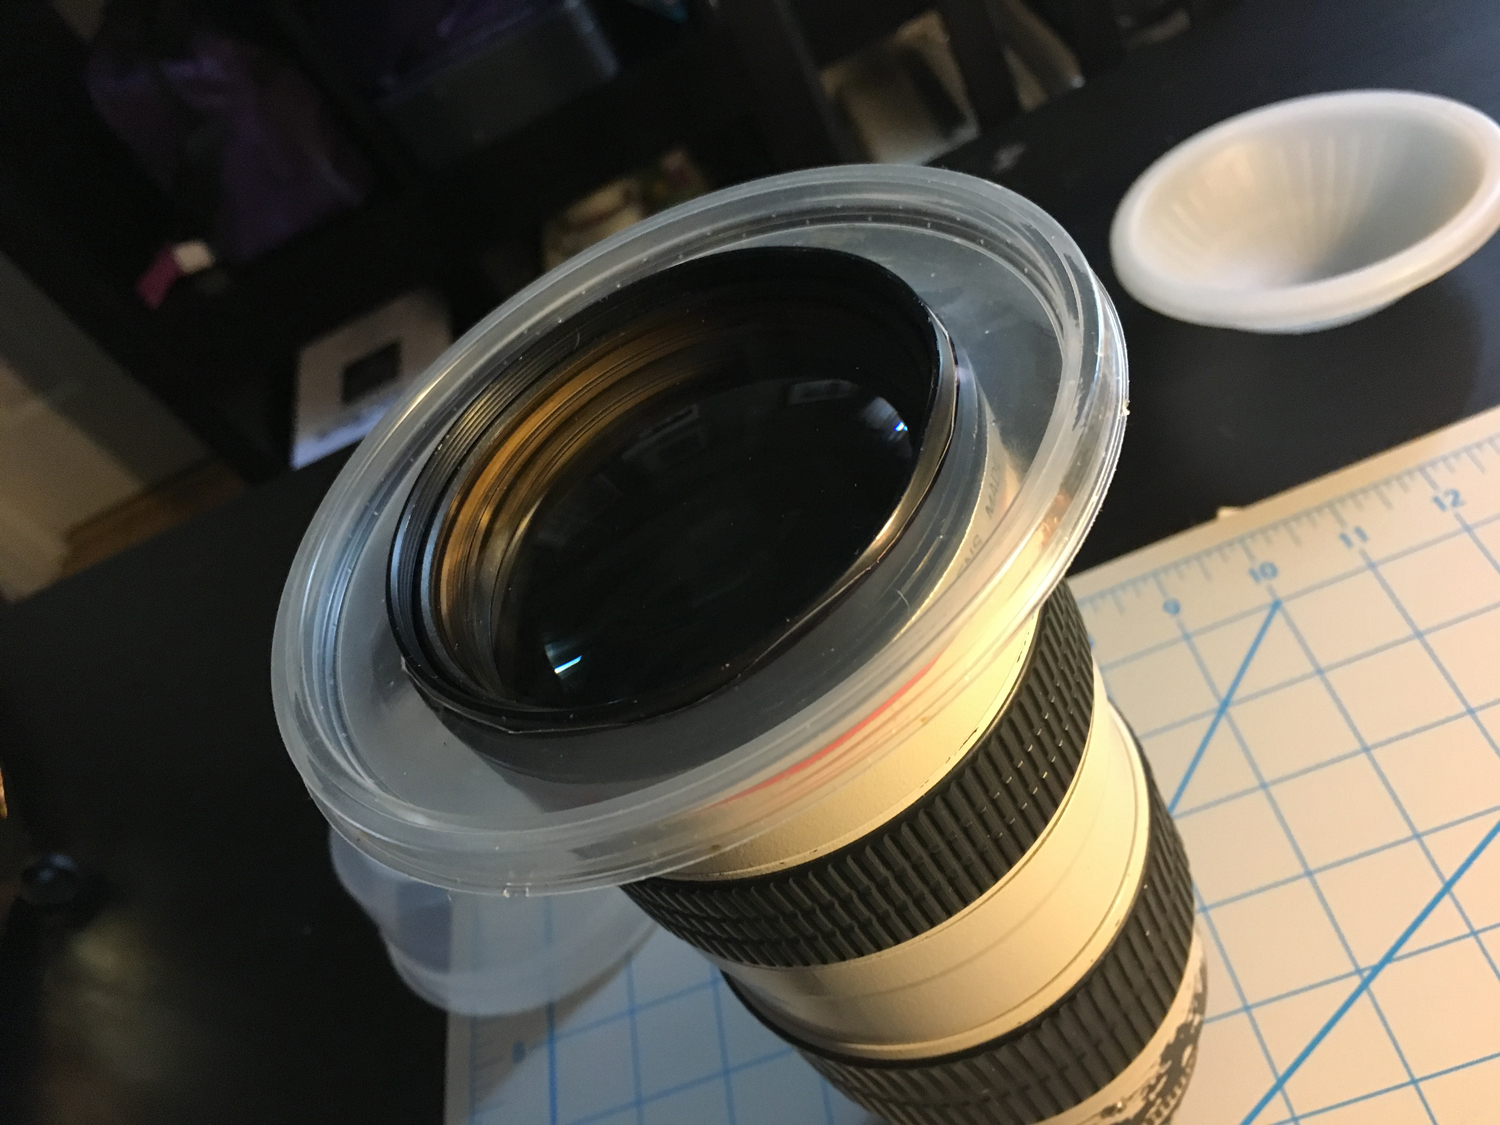 Solar Eclipse Filter in 10 min for under $10